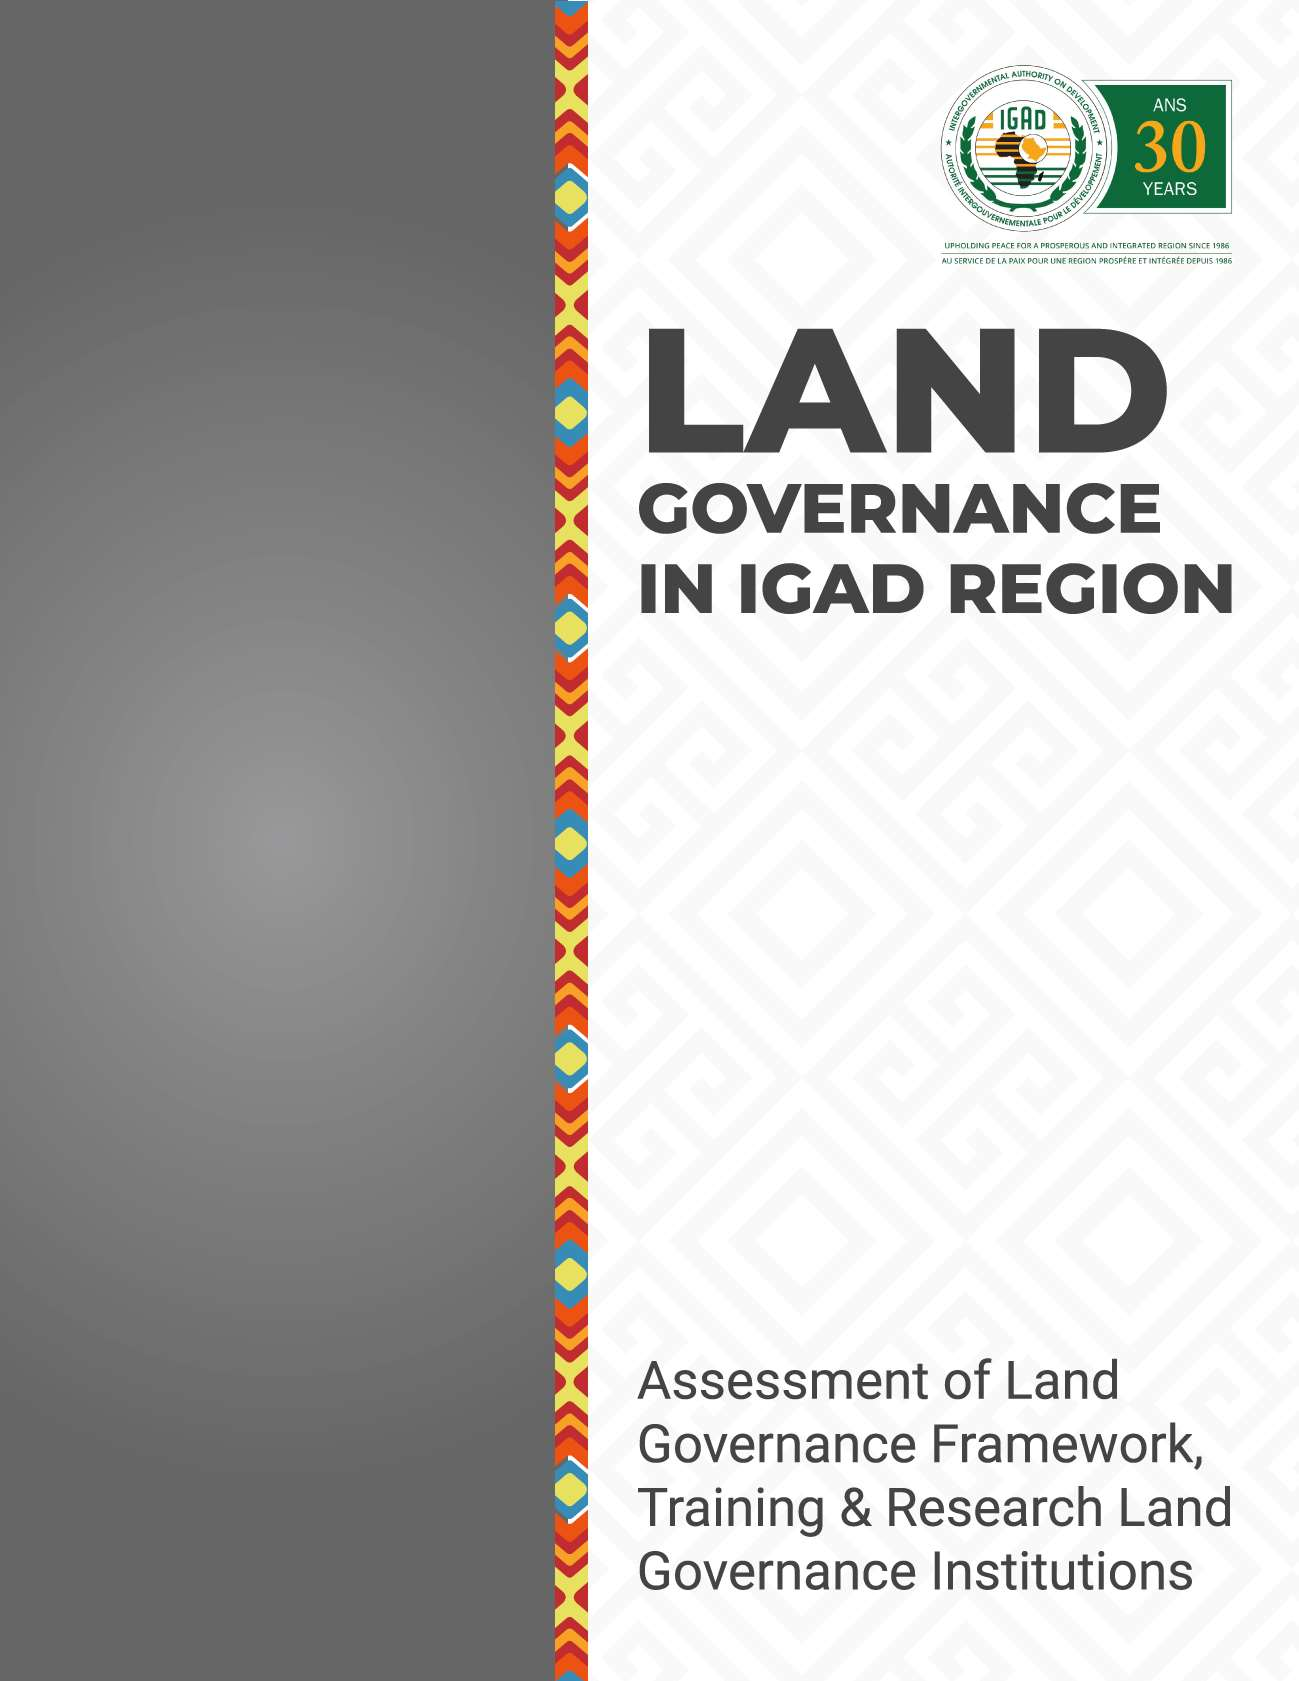 Land Governance in IGAD Region   Djibouti Country Profile